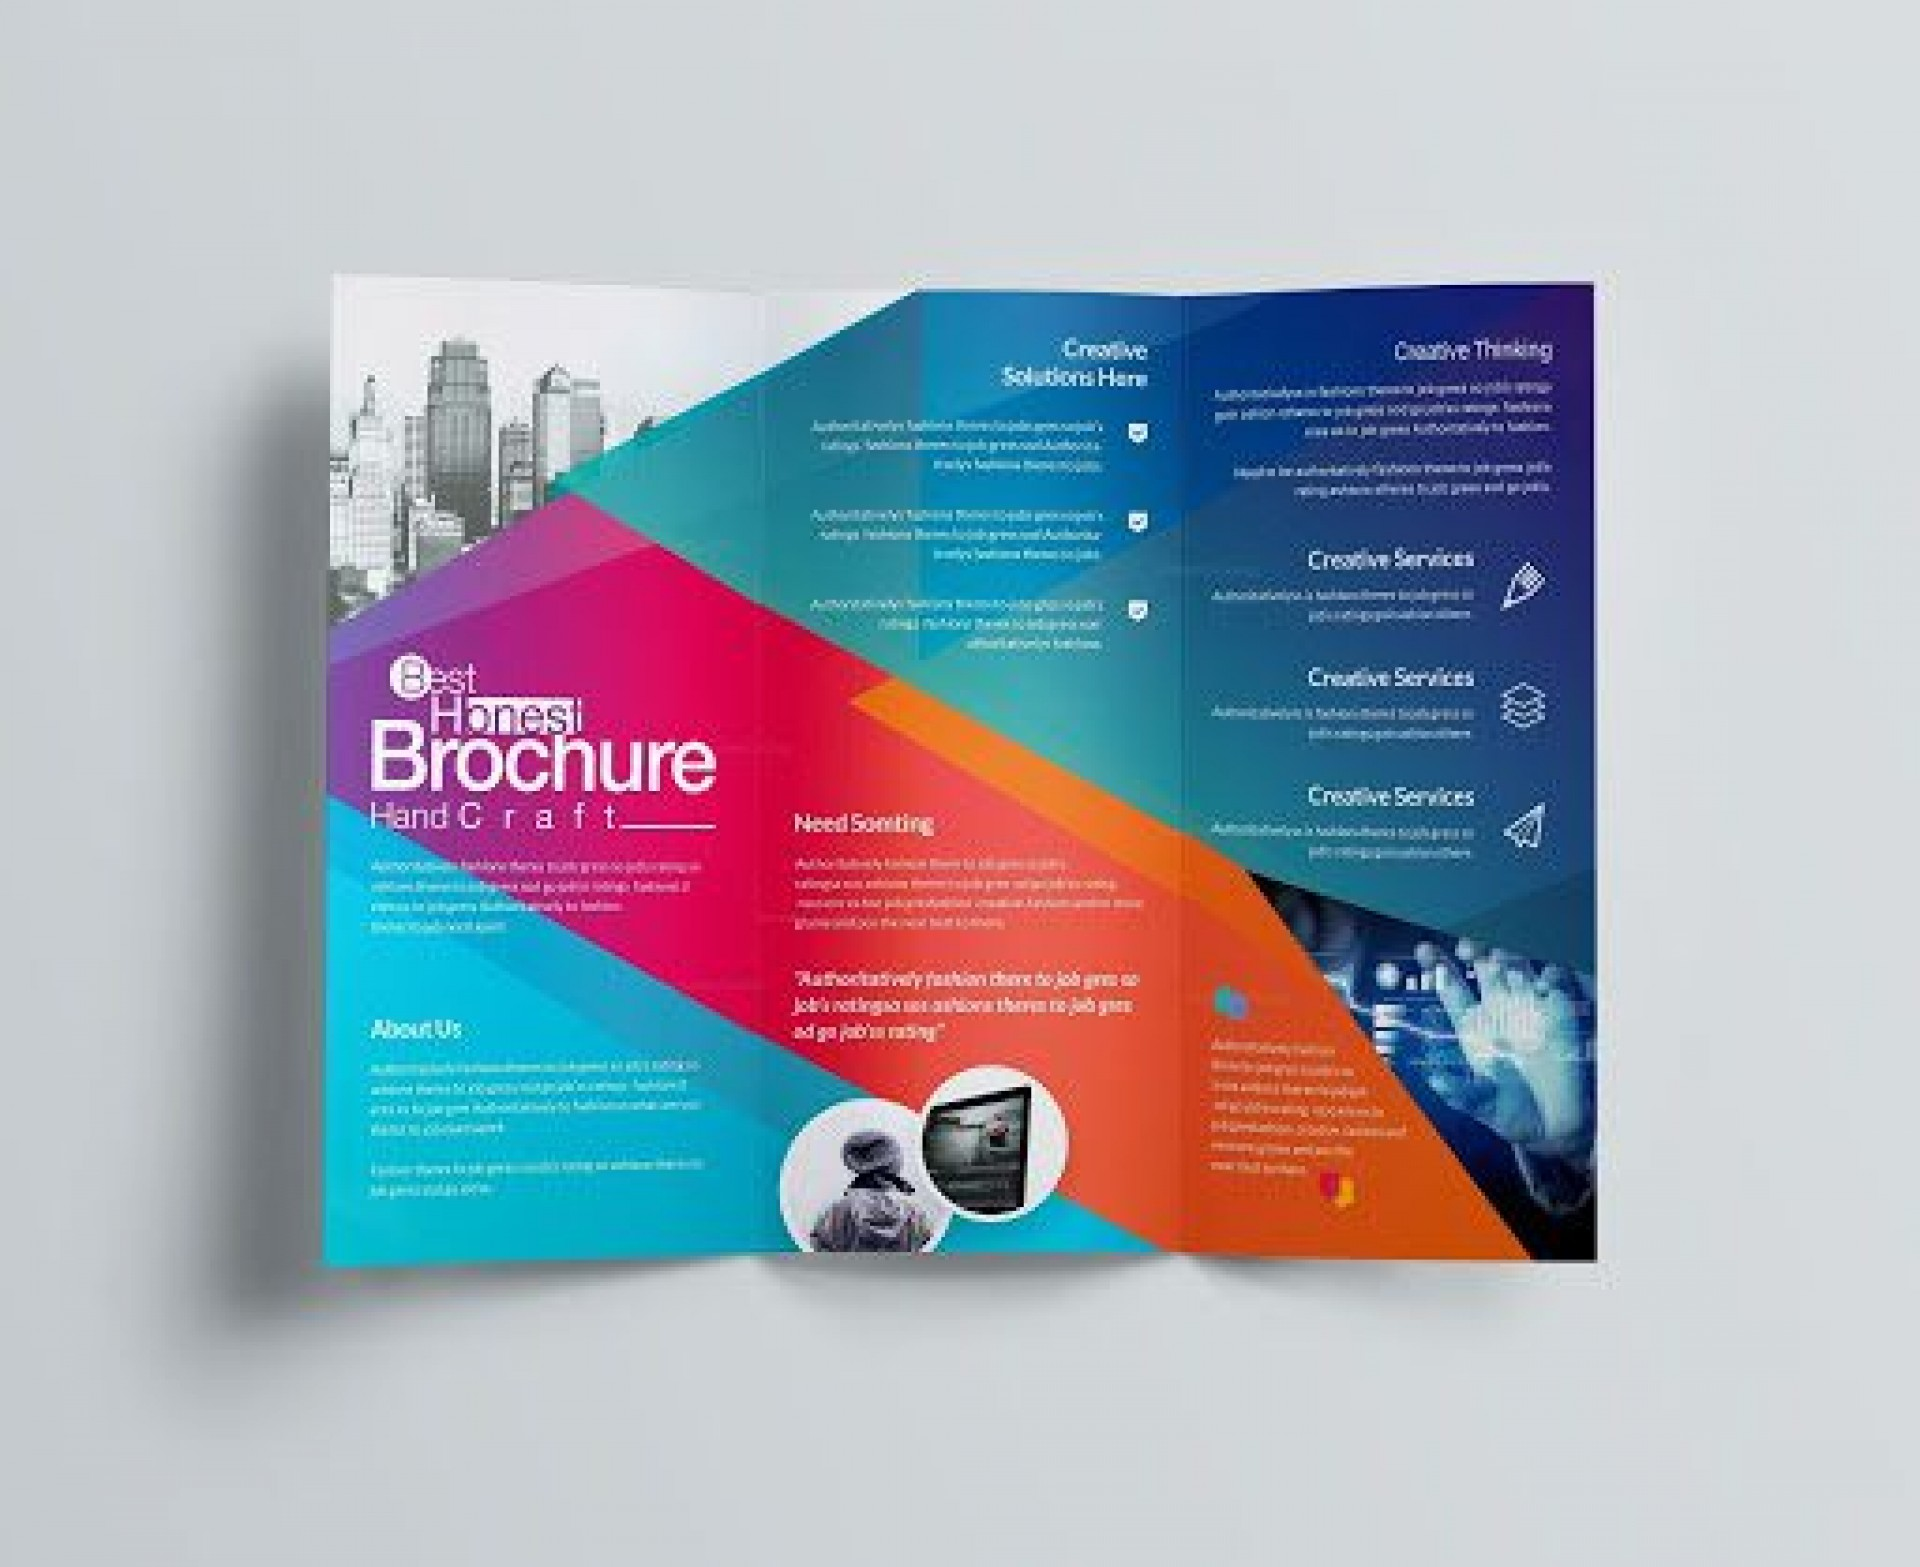 009 Unbelievable Brochure Template For Word Mac High Resolution  Tri Fold Free1920